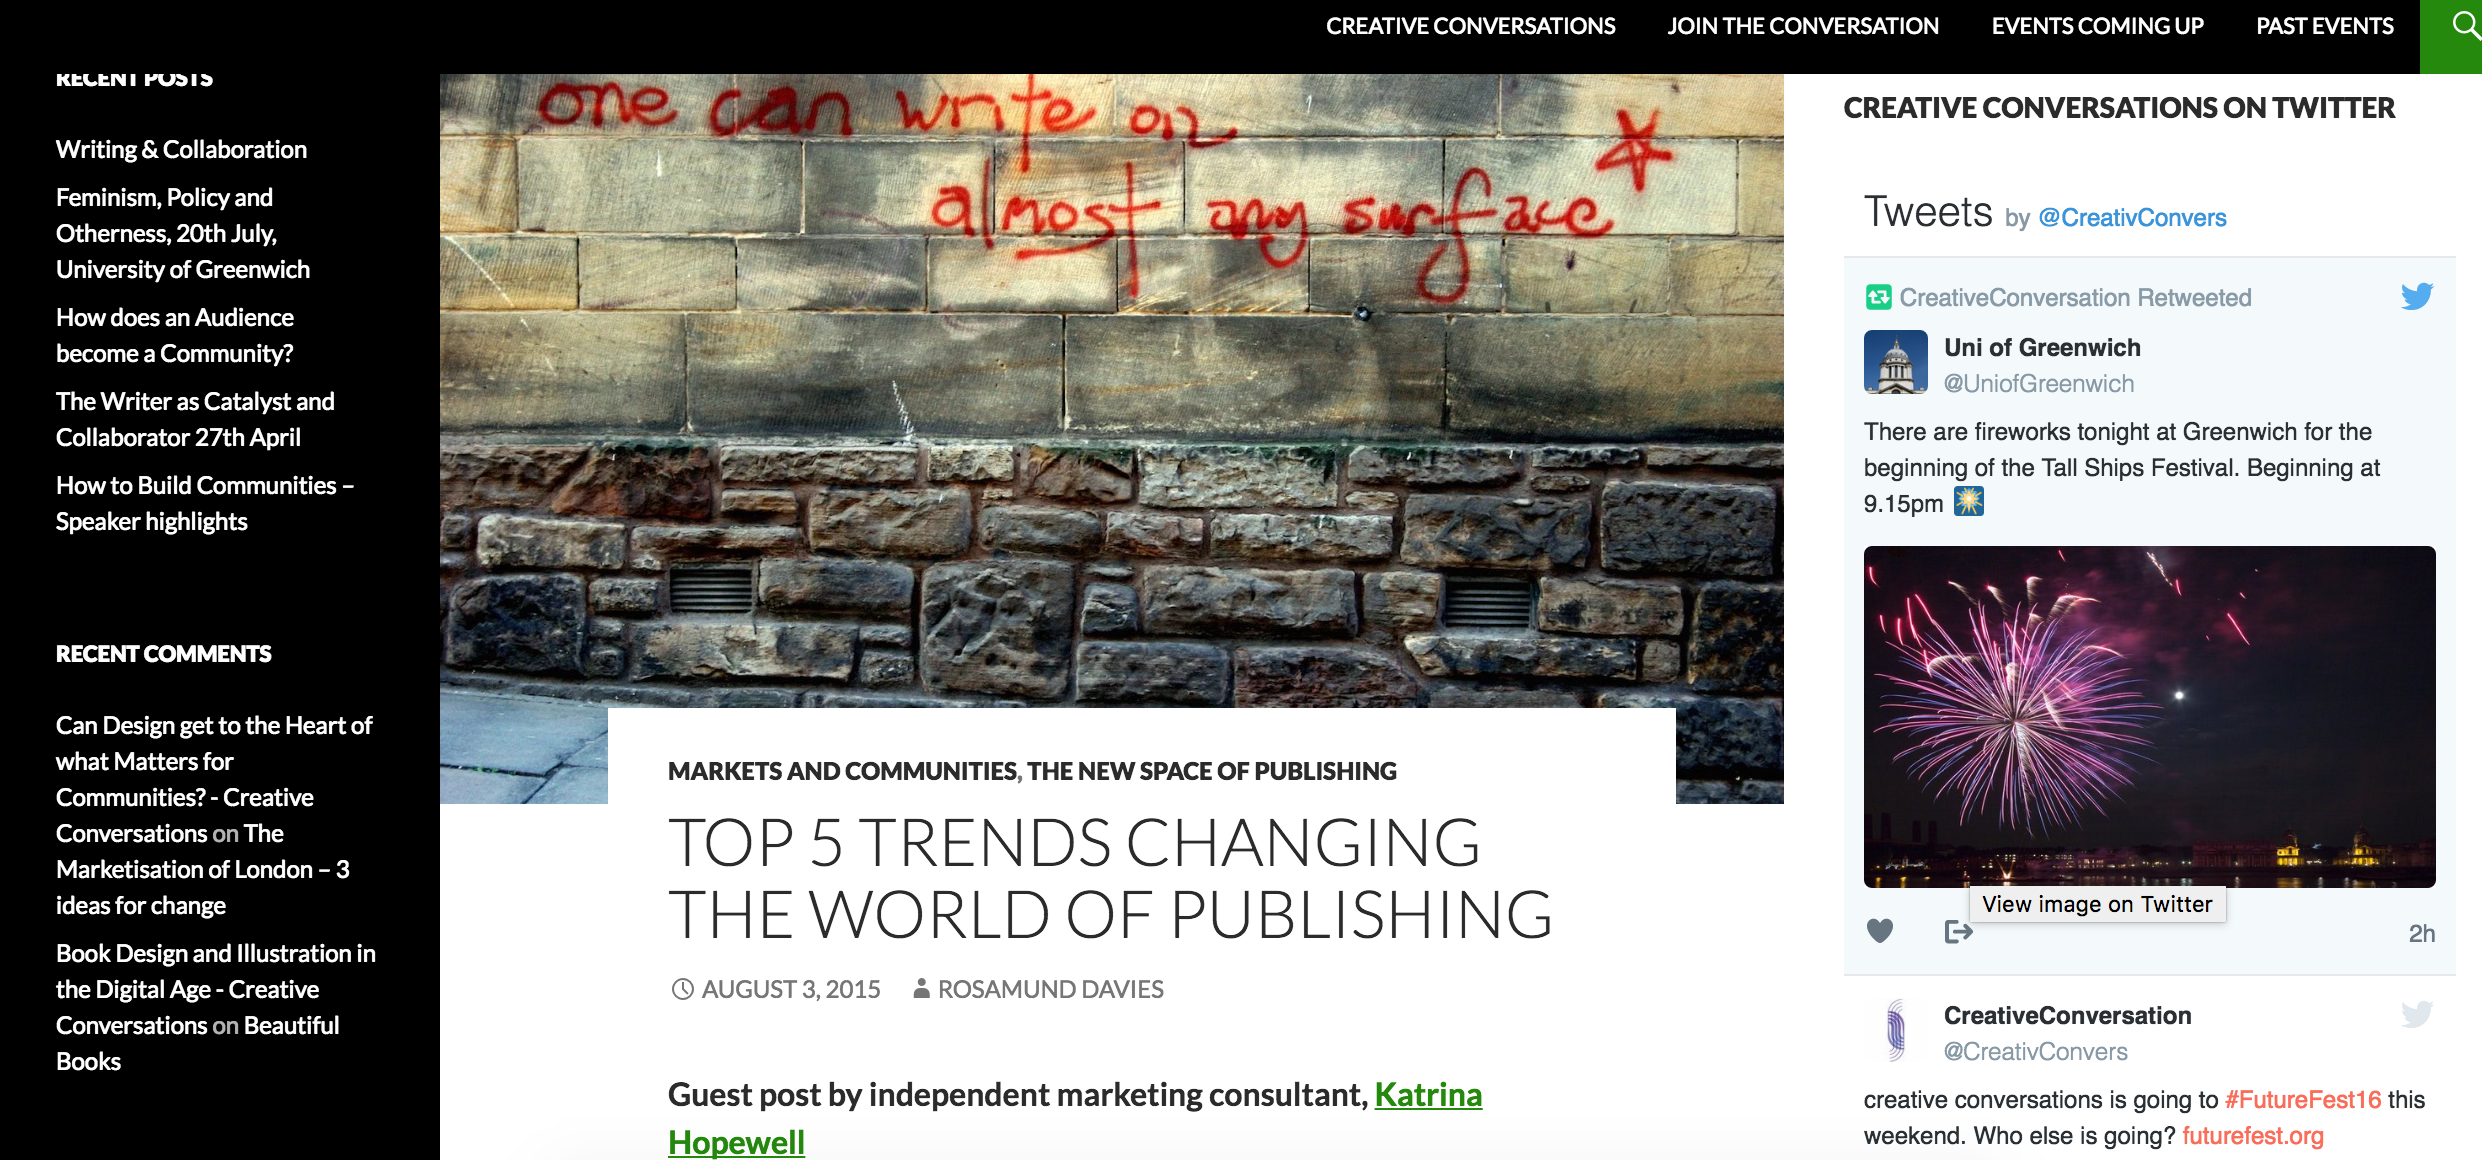 The five top trends changing the world of publishing